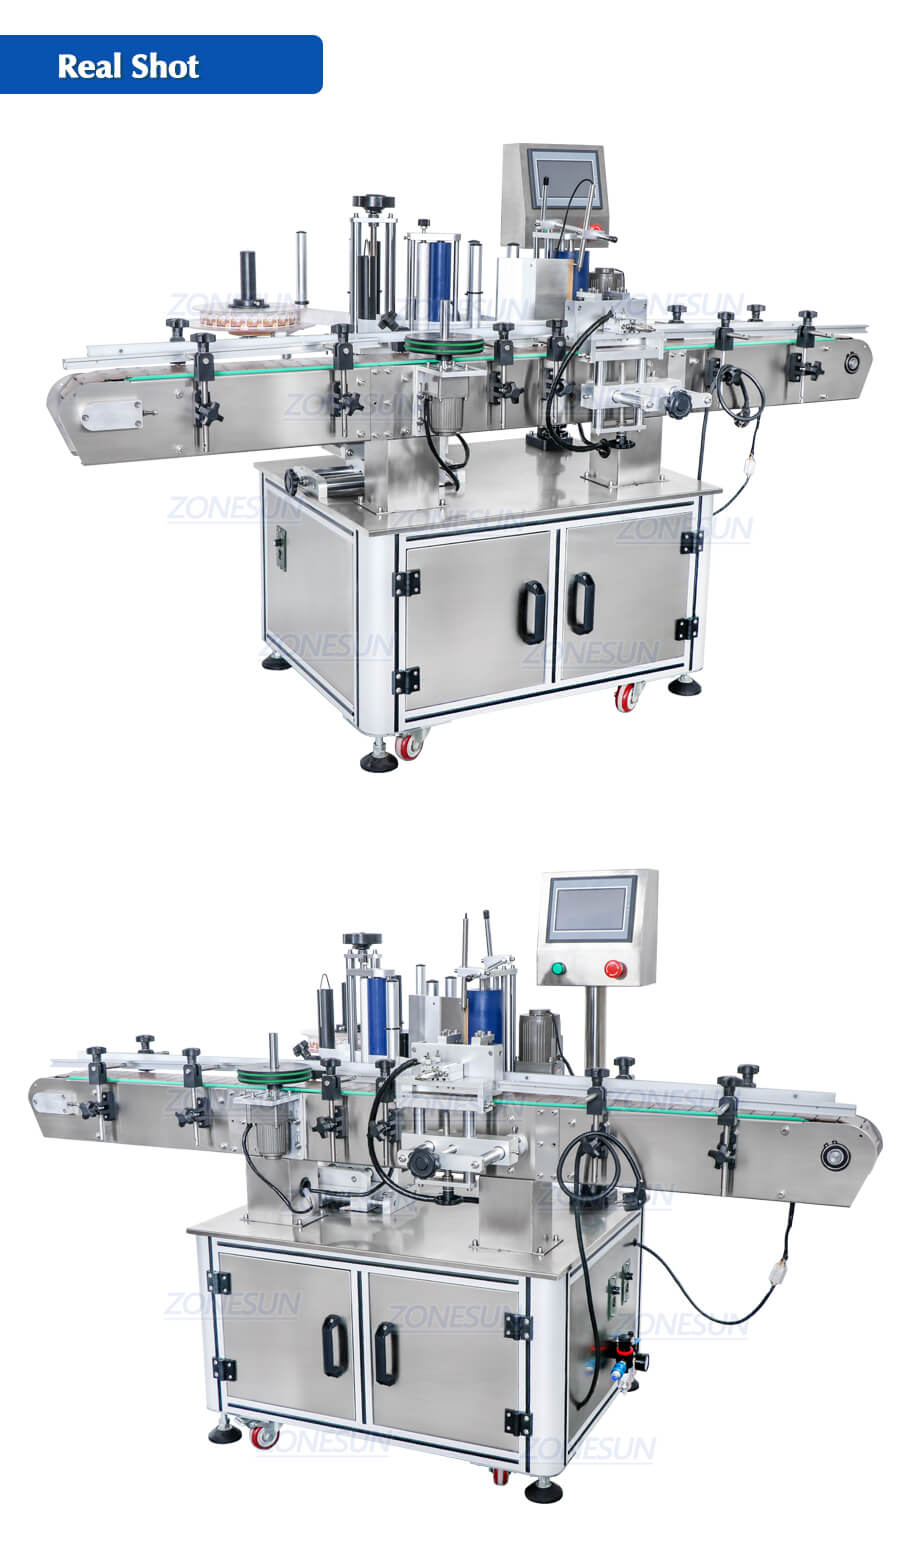 Real Shot of ZS-TB260Z Automatic Round Bottle Labeling Machine